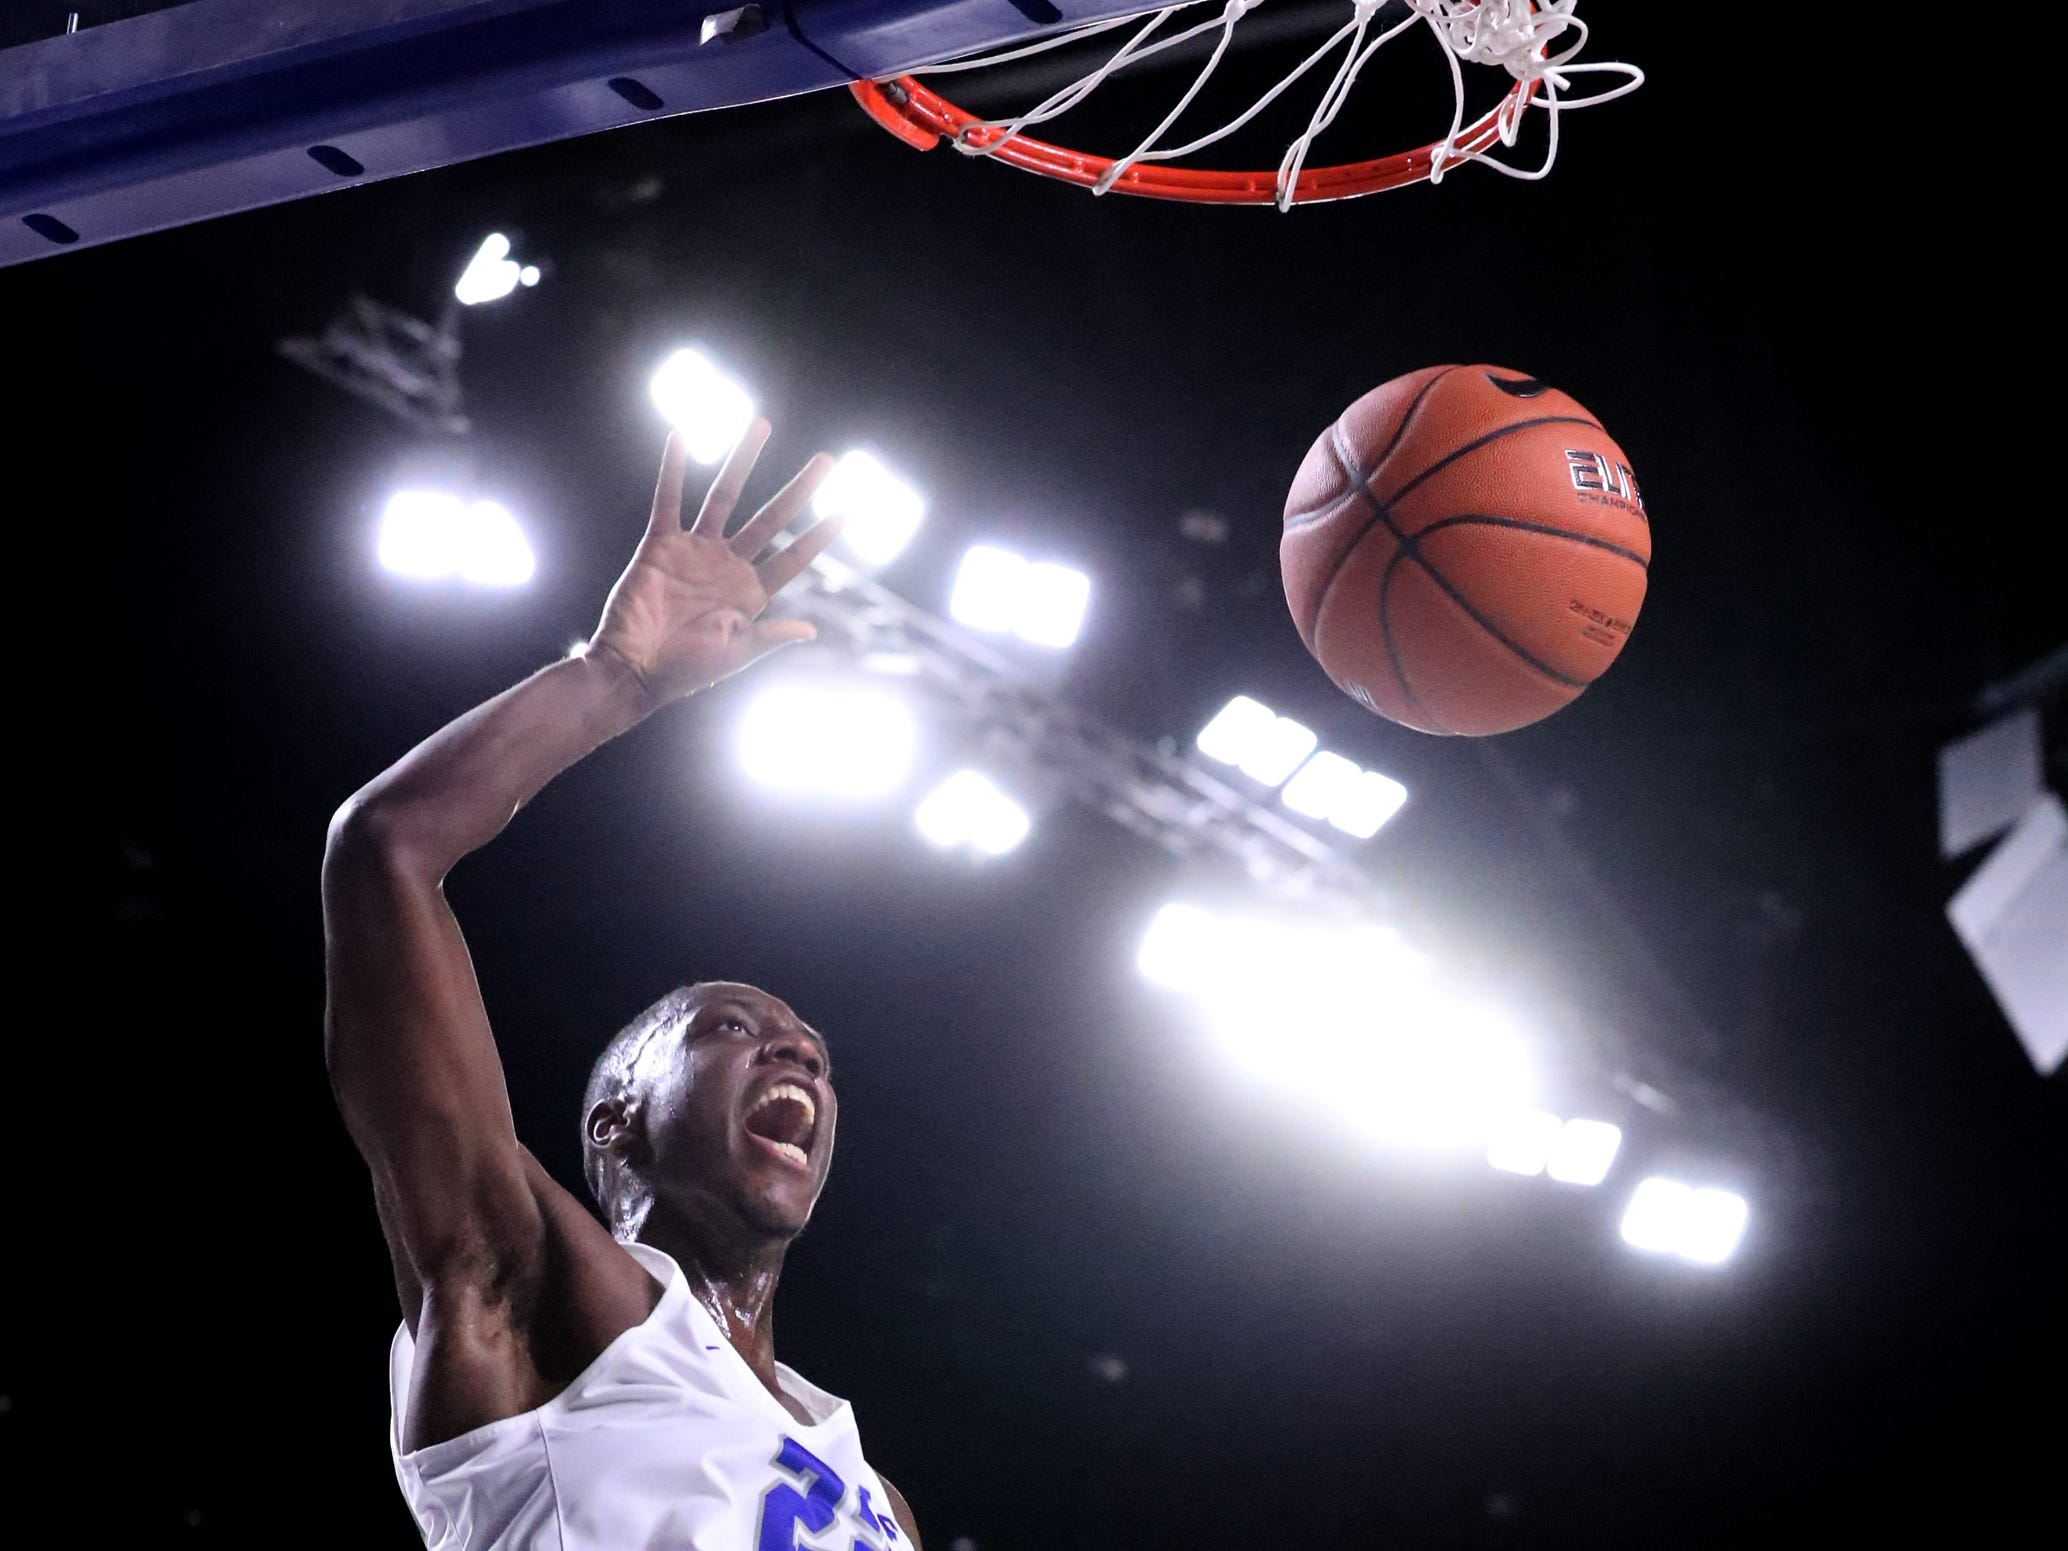 MTSU's Reggie Scurry (22) dunks the ball against Lees-McRae on Tuesday, Nov. 6, 2018.